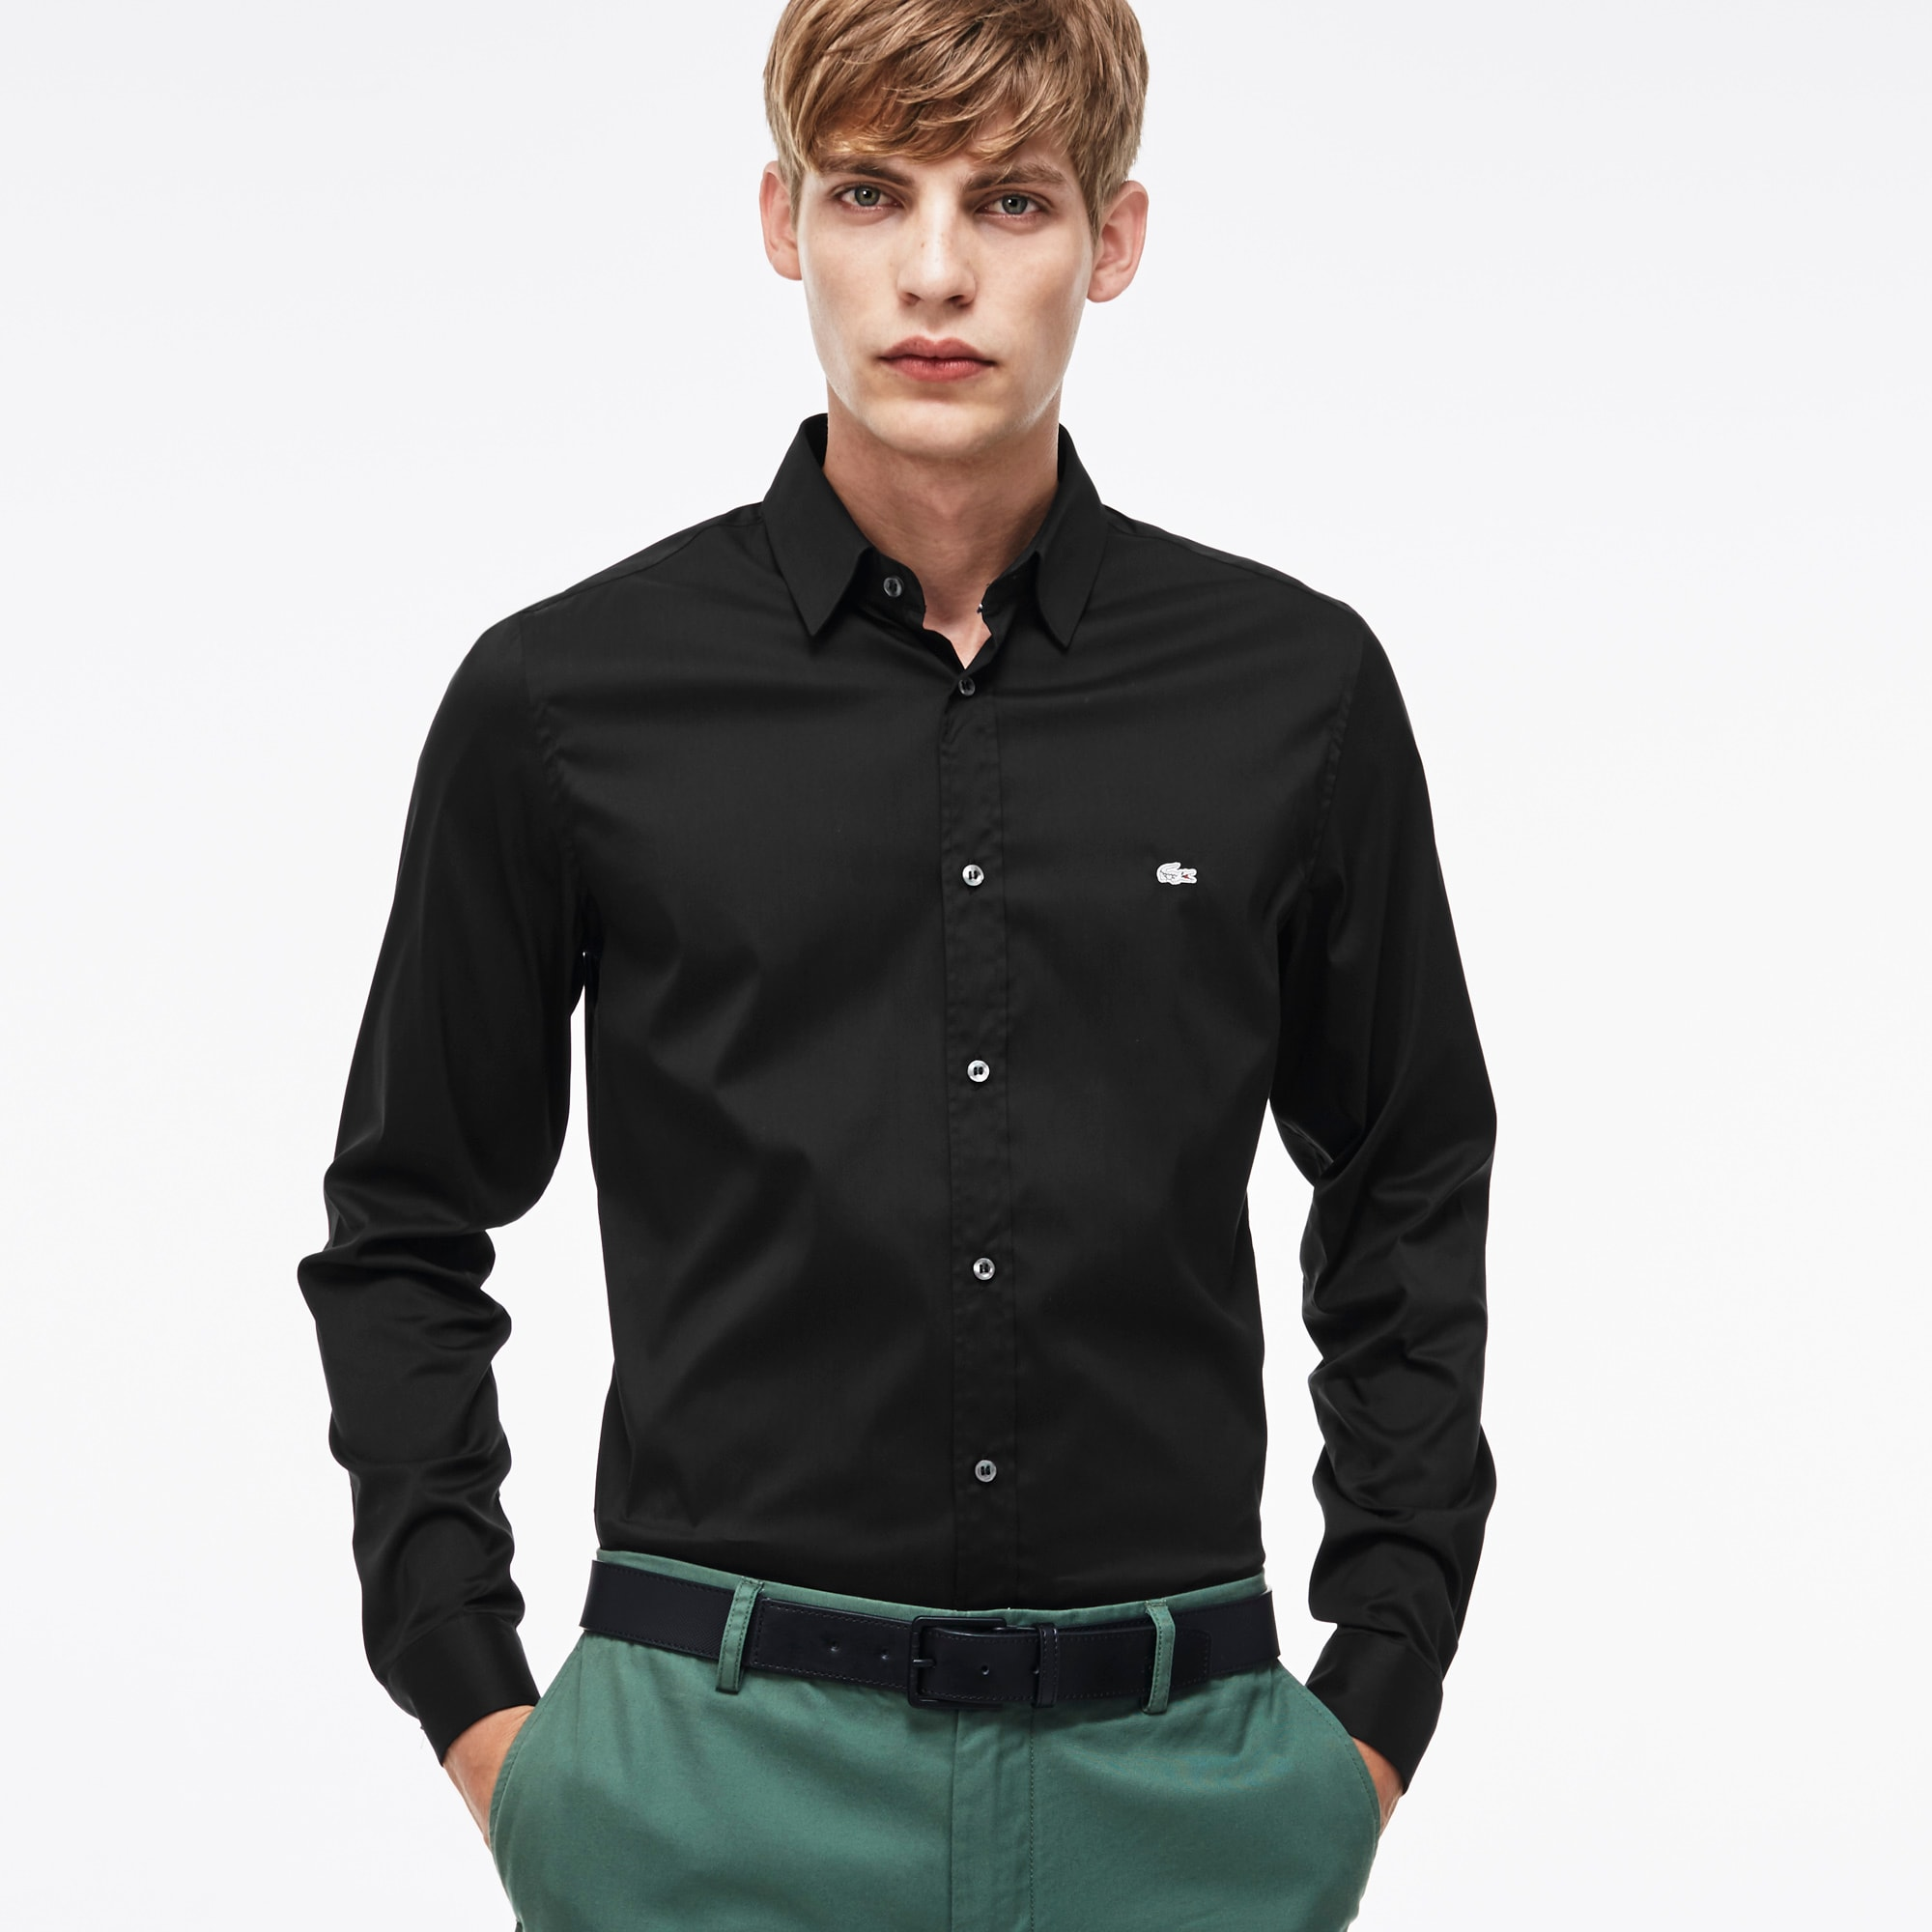 Men's Solid Poplin Woven Shirt